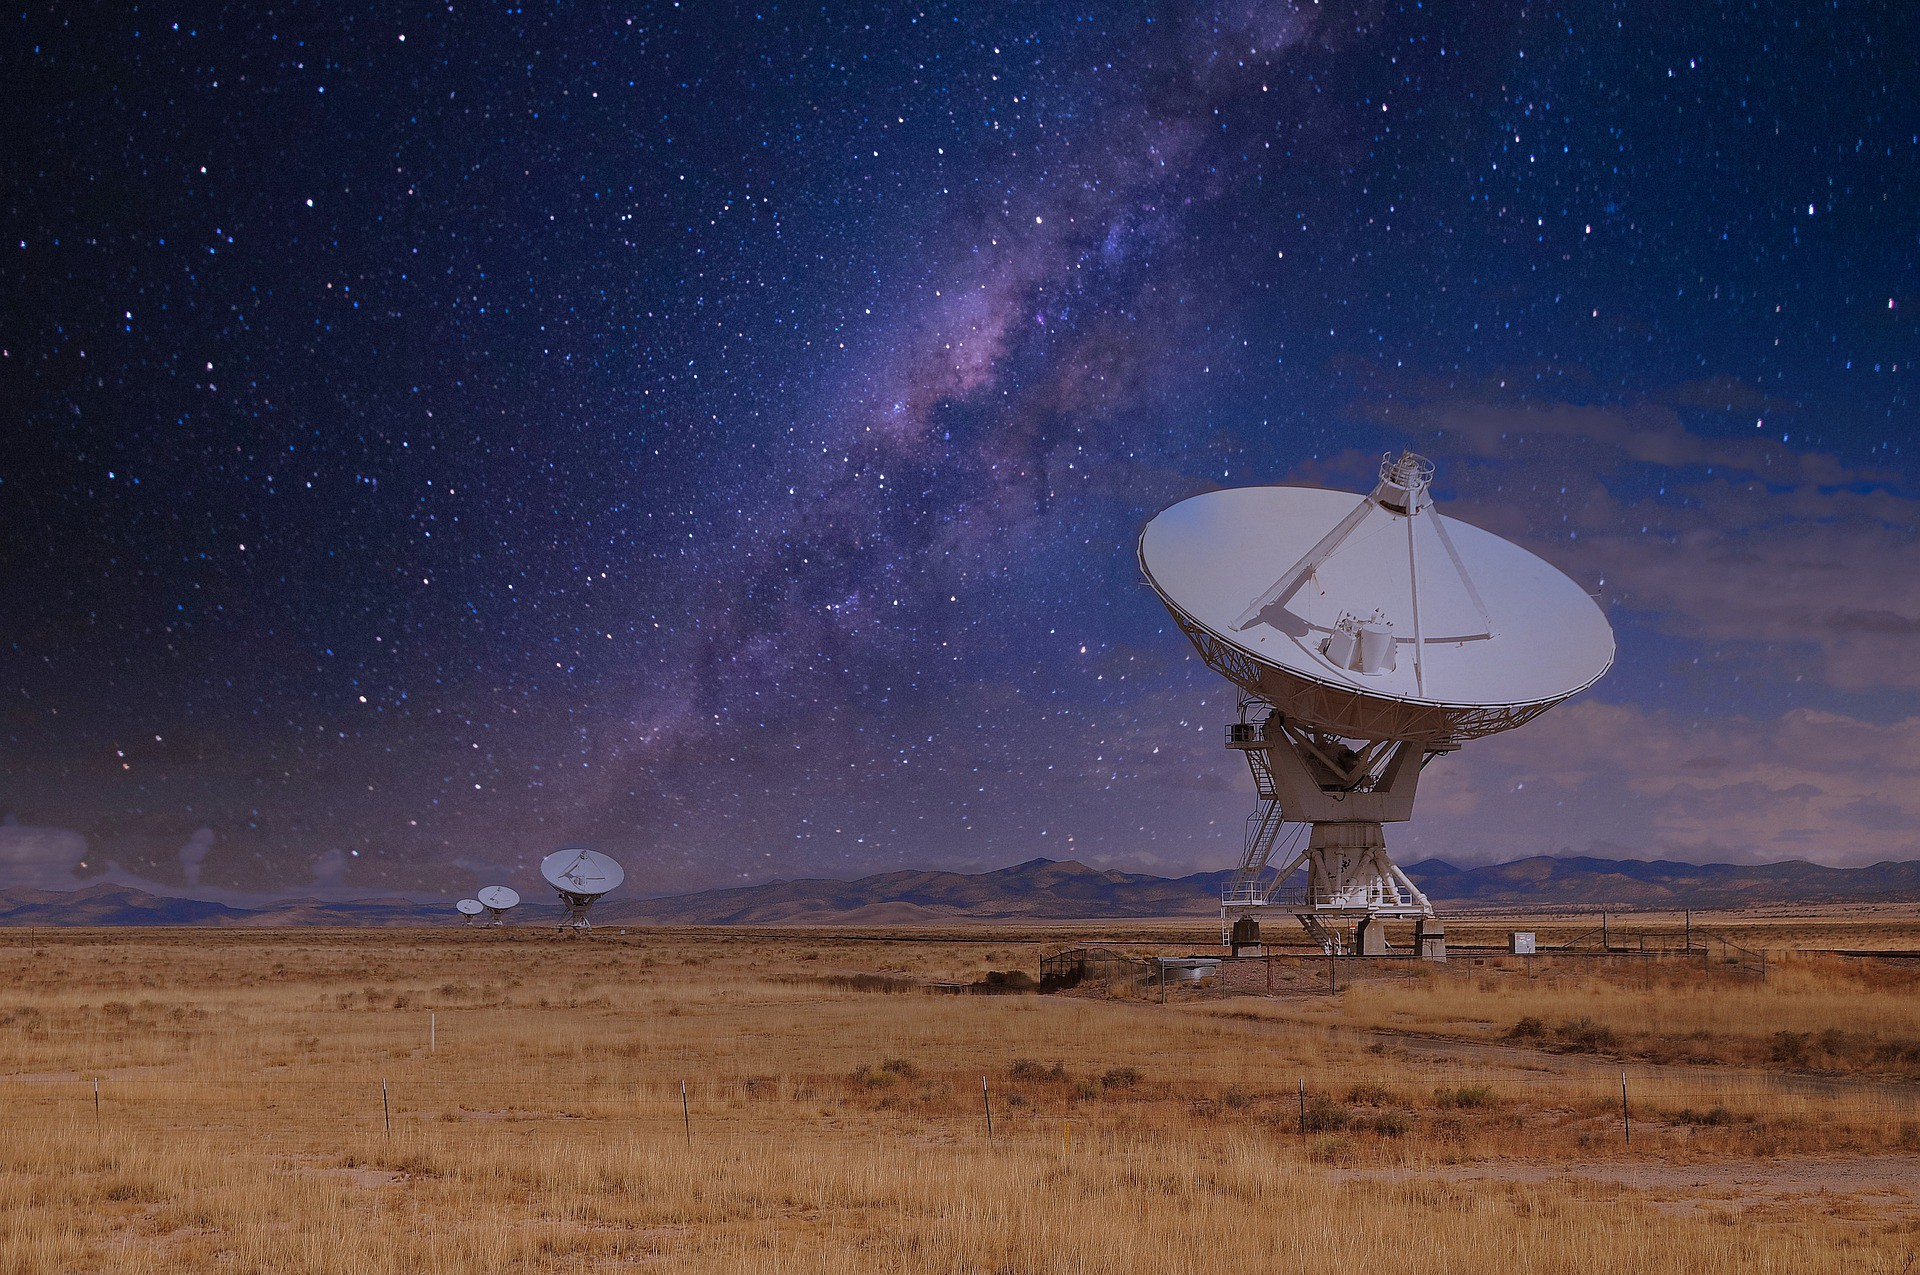 The Very Large Array radio telescope in New Mexico. Image by Pierluigi D'Amelio from Pixabay